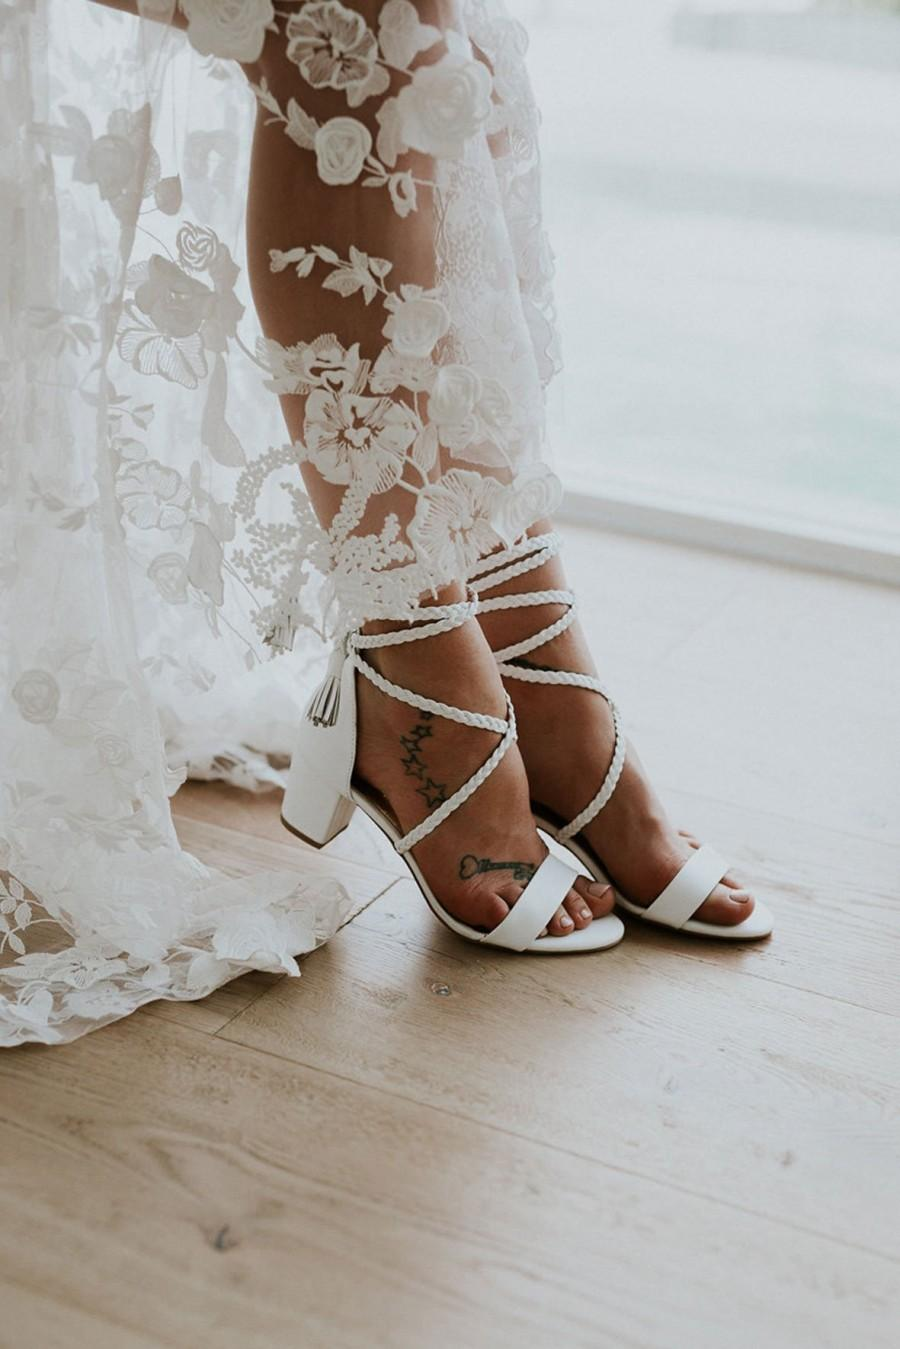 Mariage - Ladies low heel wedding shoes, Plaited Leather, Plaited ties, Bohemian Bridal Shoe, Wedding shoe, Boho shoe, Beach wedding: Daydreamer